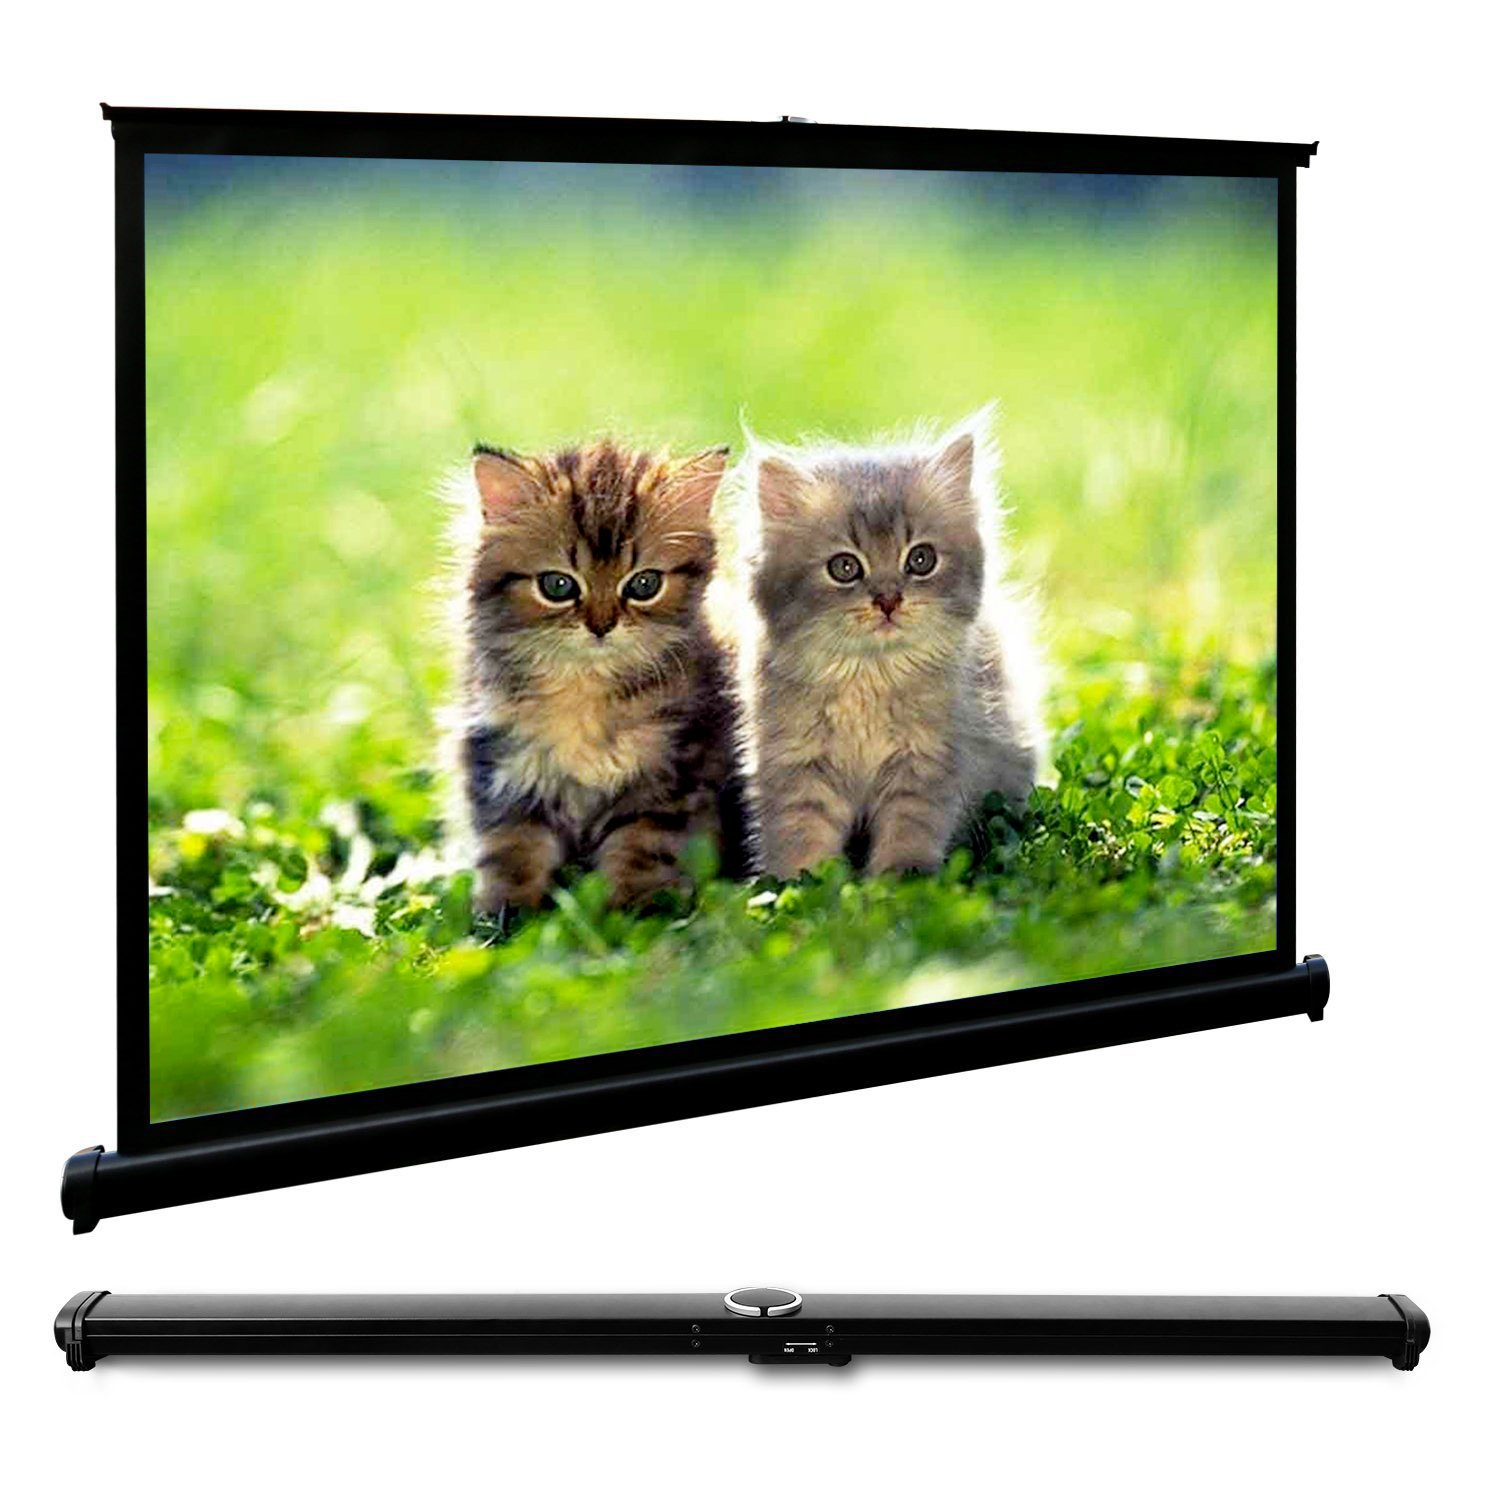 EZAPOR Mini Table Screen Outdoor Business Portable Movie Screens 50 Inch 4:3 Home Cinema Projector Screen with PVC Fabric Matte White